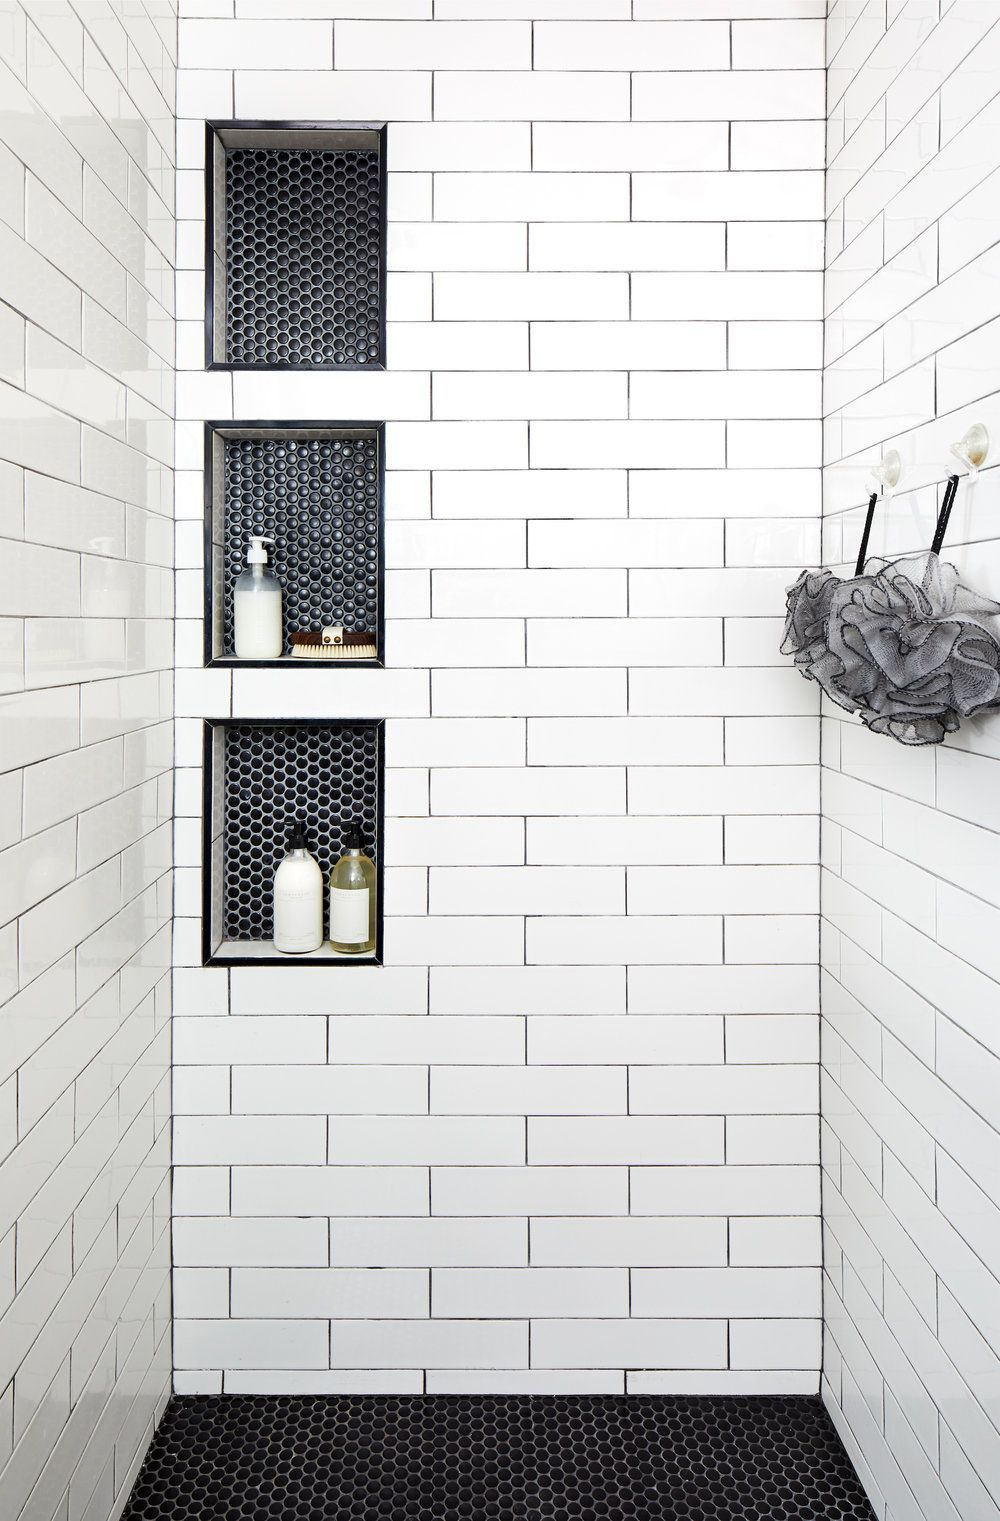 Pin By Fenny Austina On Inspiration Home In 2020 Bathrooms Remodel Shower Niche Bathroom Remodel Master